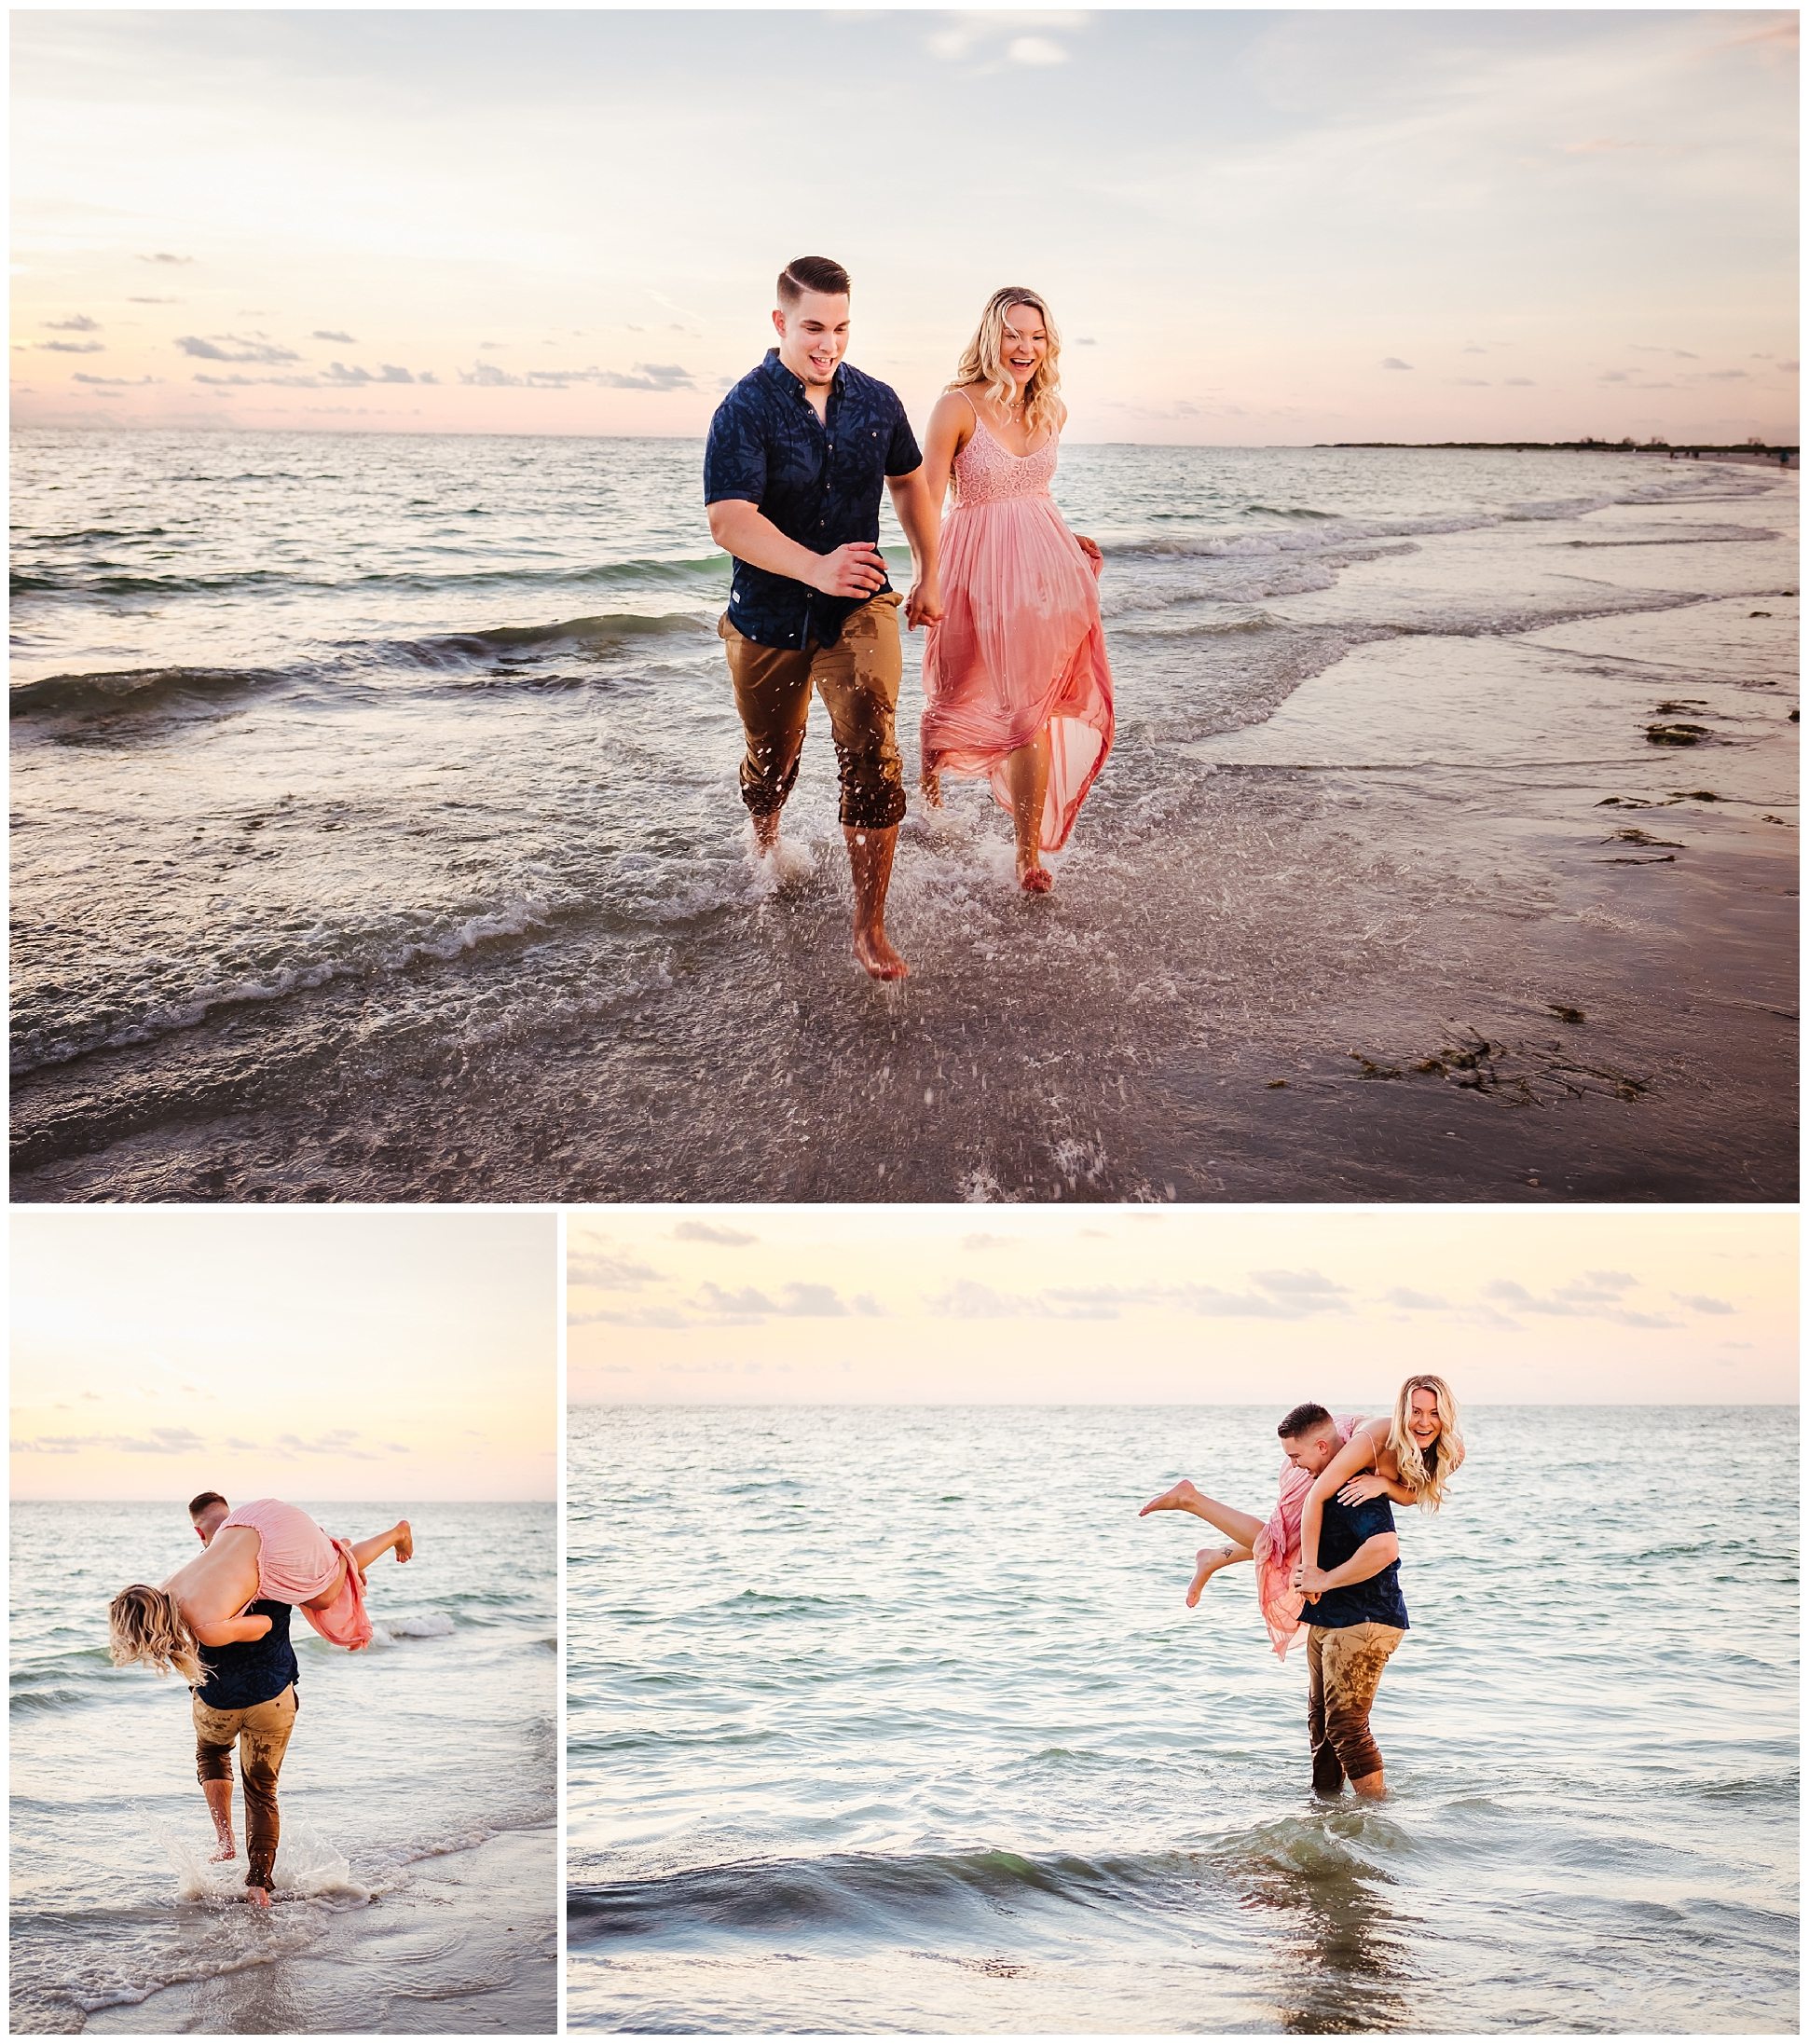 fort-desoto-engagement-photos-florida-beach-sunset_0244.jpg